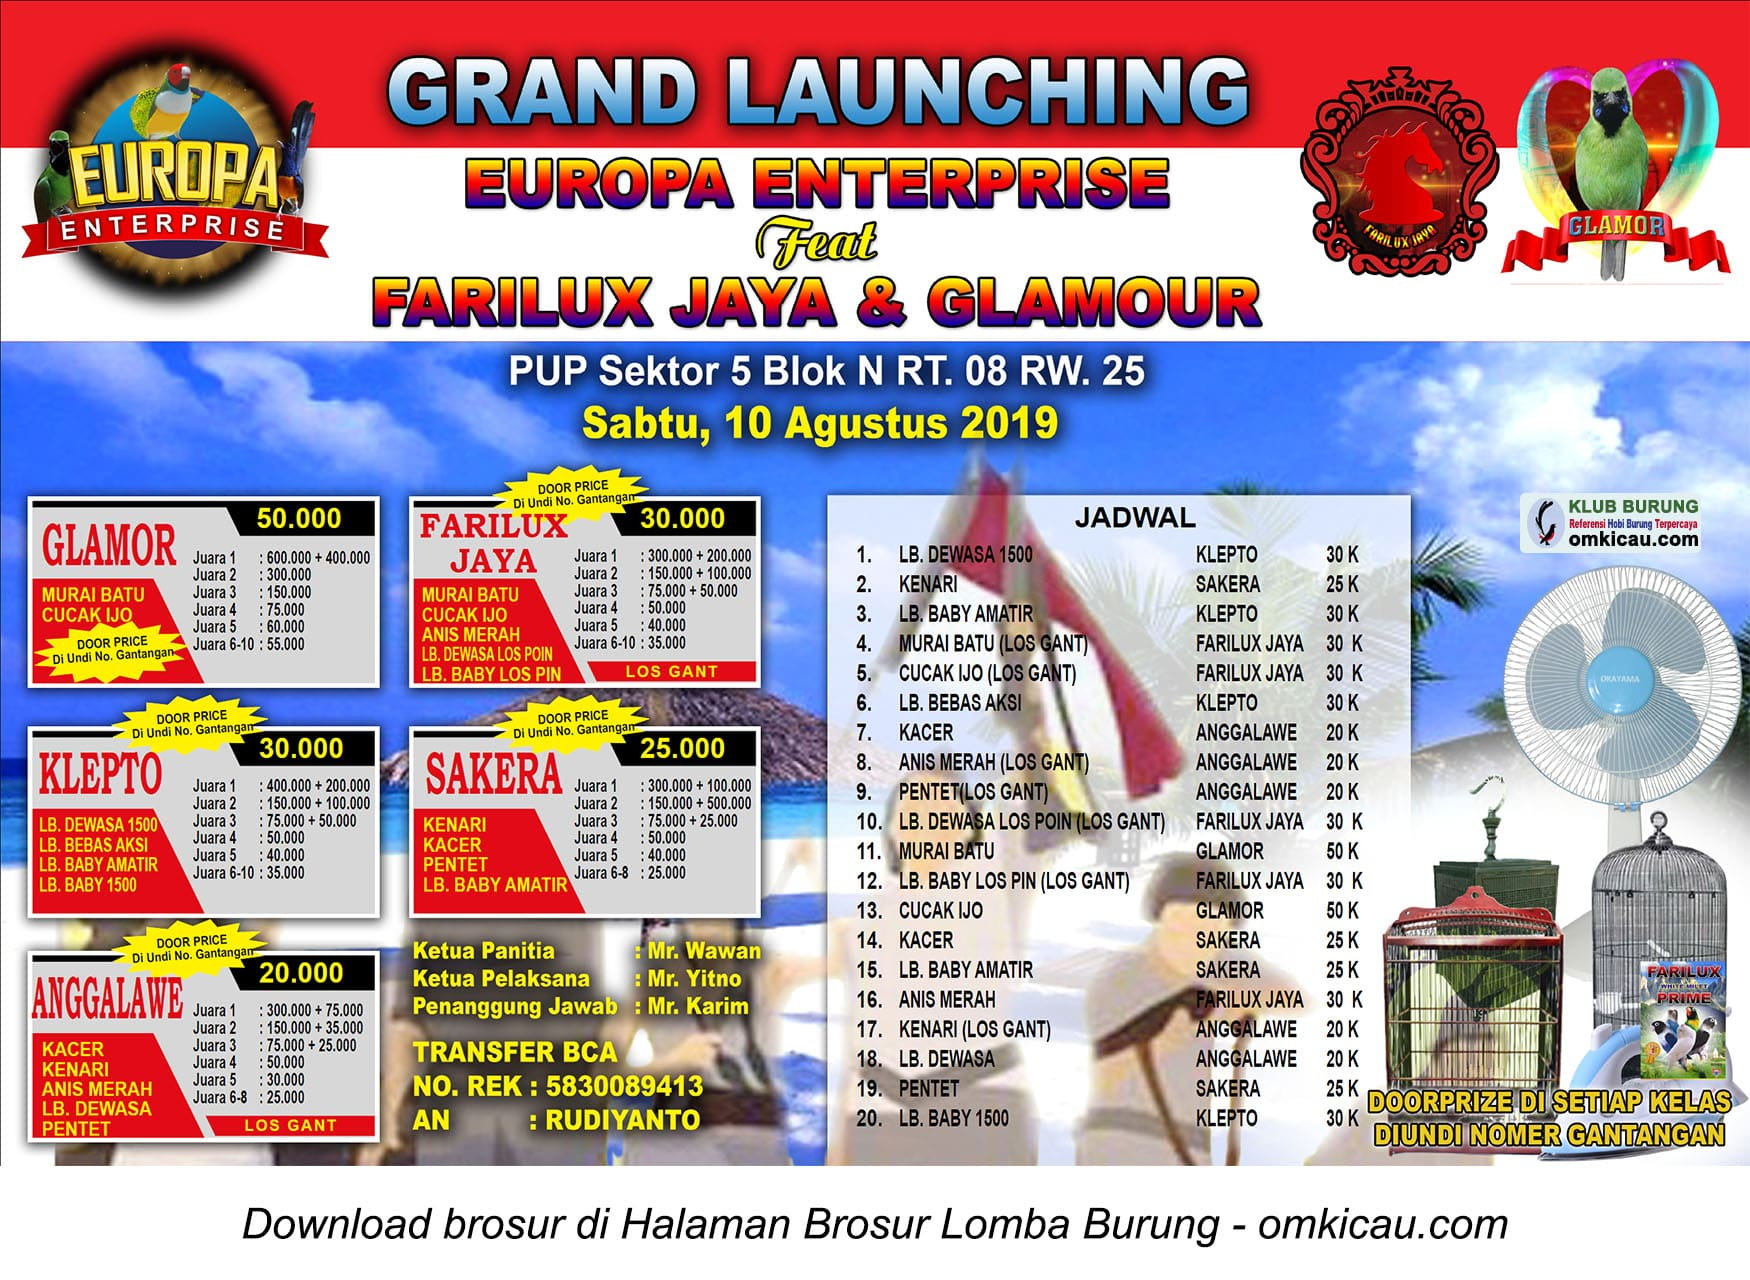 Grand Launching Europa Enterprise